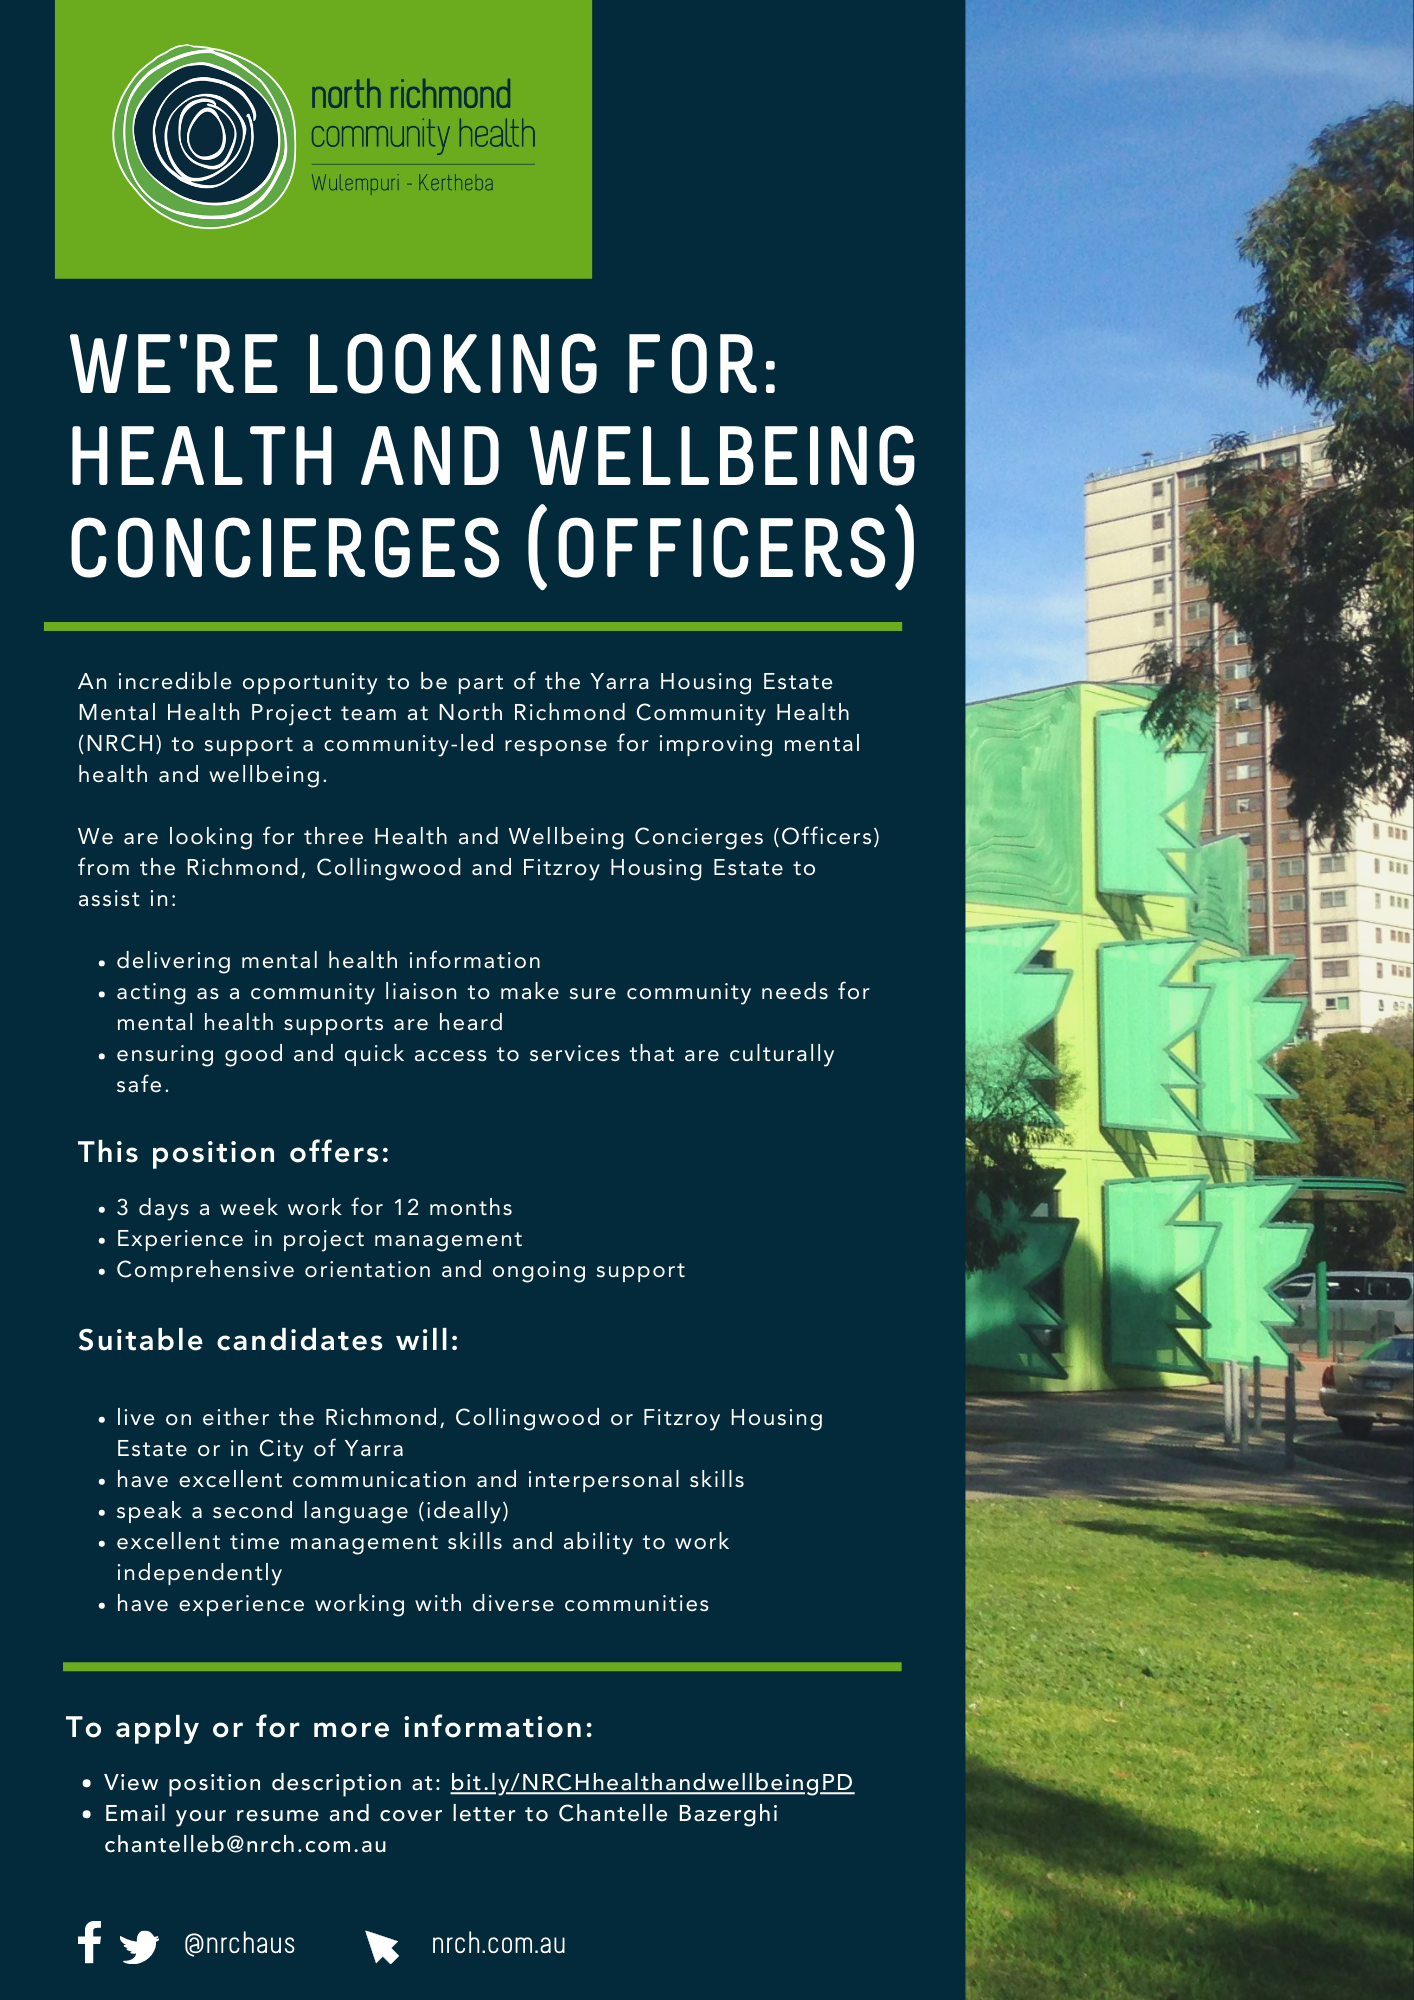 NRCH Health and Wellbeing Concierge EOI 2021